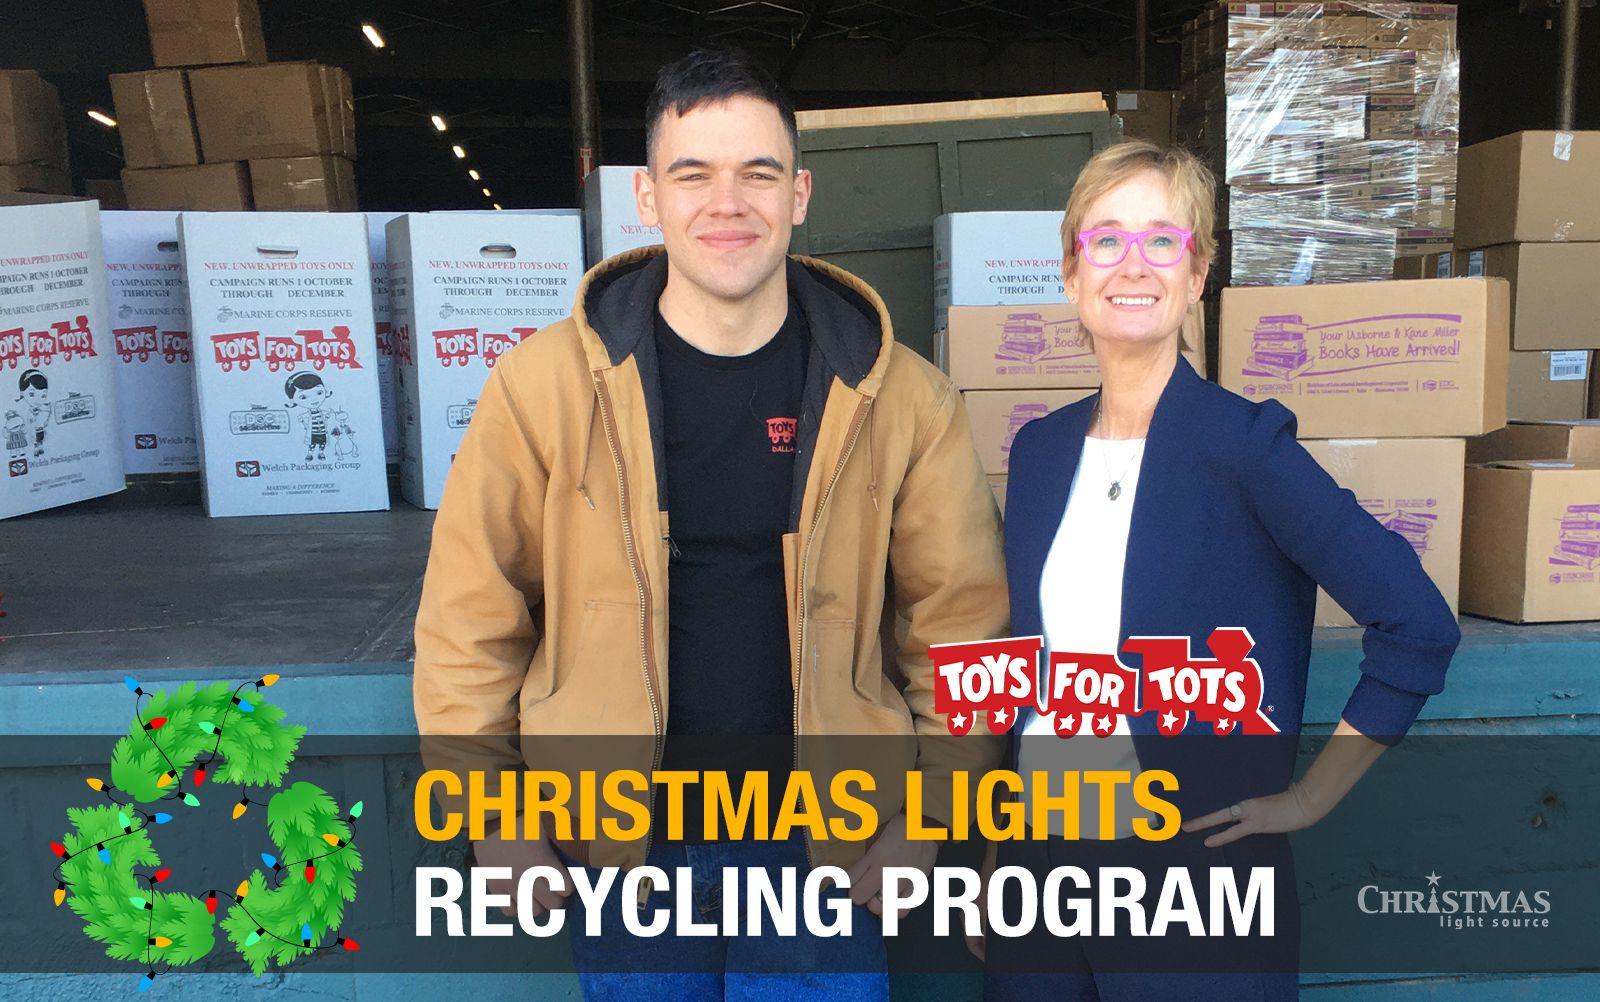 Christmas Lights Recycling Benefits Toys for Tots for 2019 in 2020